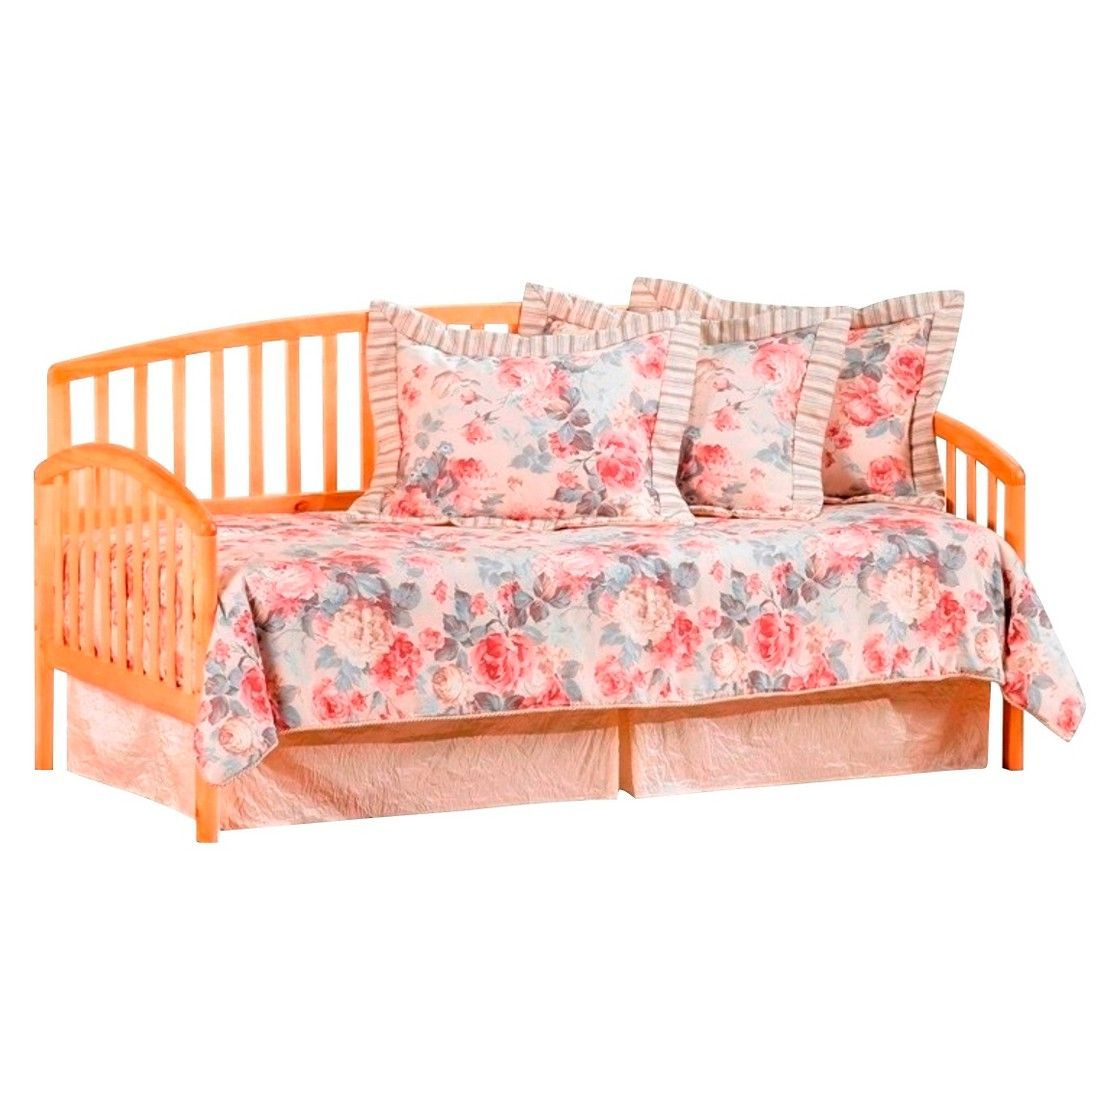 Carolina Daybed Country Pine Hillsdale furniture